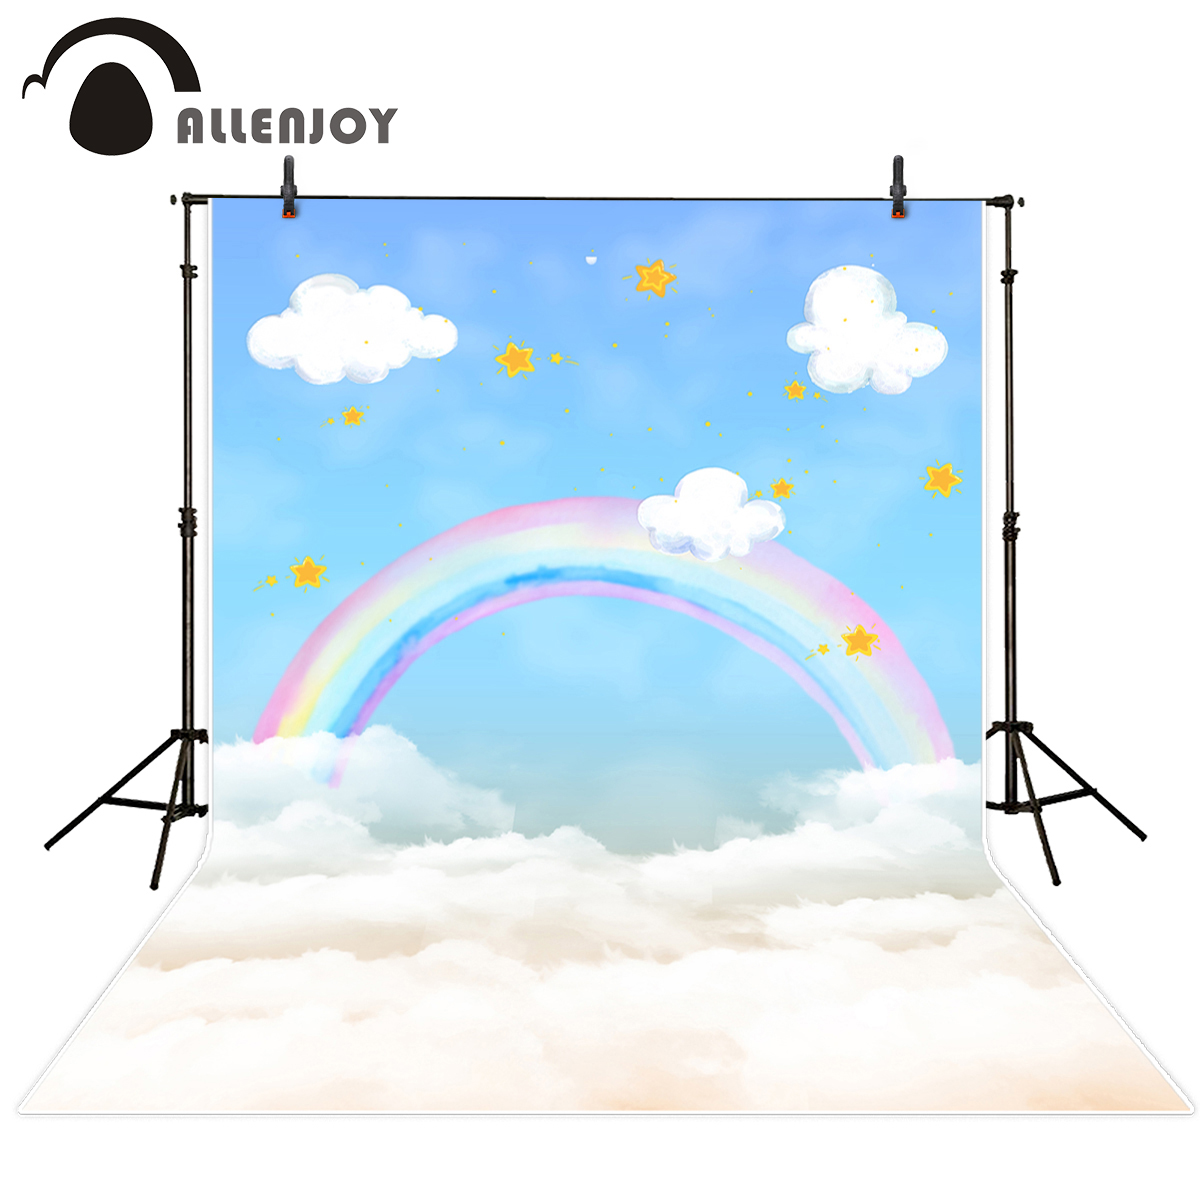 Allenjoy photography backdrops rainbow Clouds stars lovely backgrounds for children baby newborn photo backdrop Backgrounds 300cm 200cm about 10ft 6 5ft backgrounds heart shape of water droplets photography backdrops photo lk 1529 valentine s day